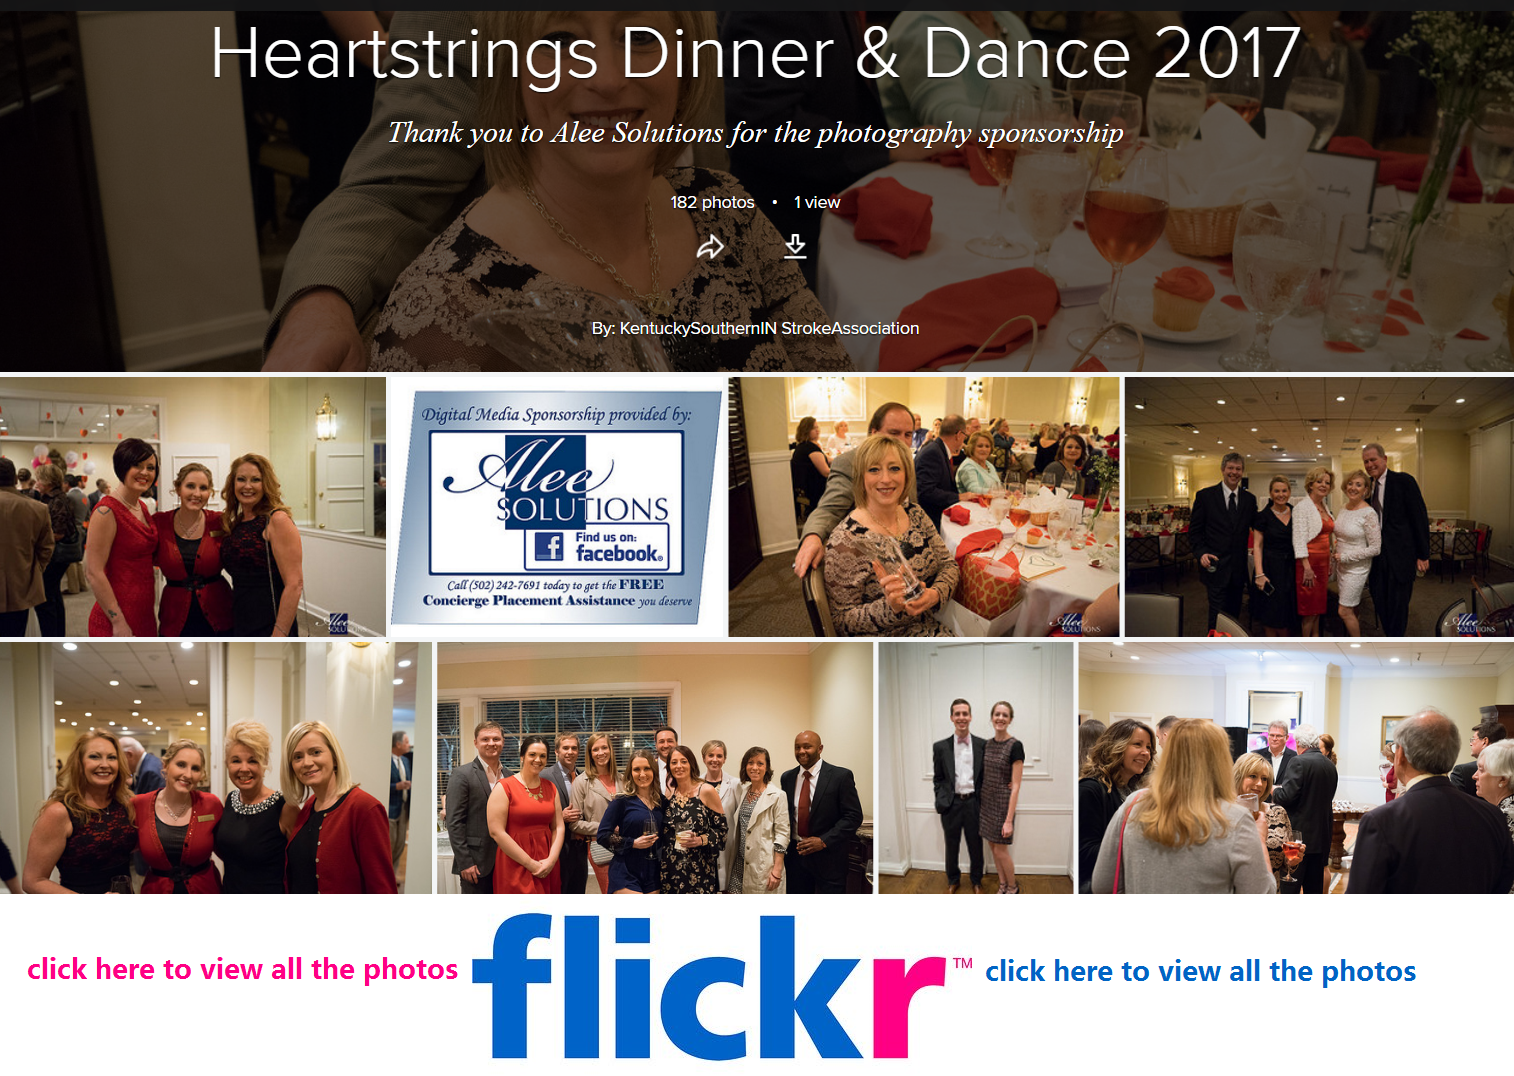 Click image to see all 182 photos from the event.